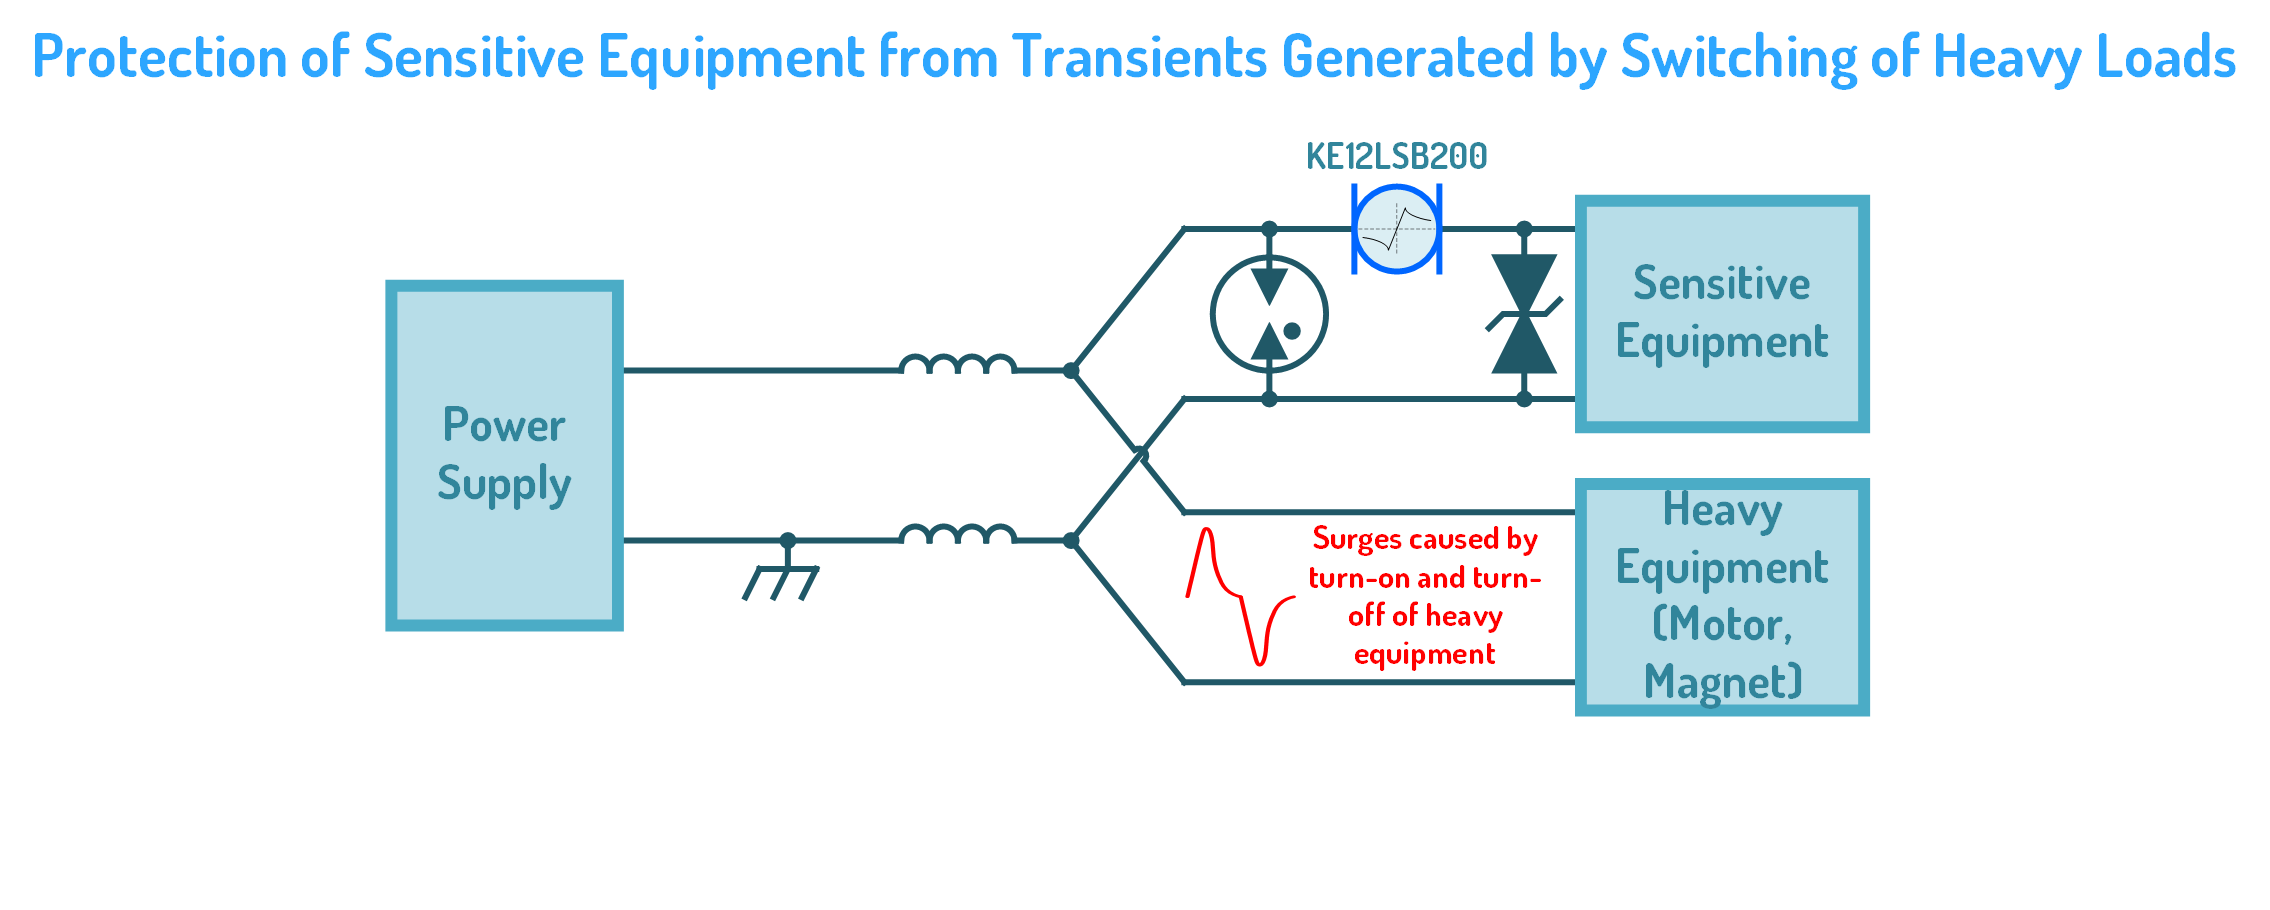 Protection of Sensitive Equipment from Transients Generated by Switching of Heavy Loads